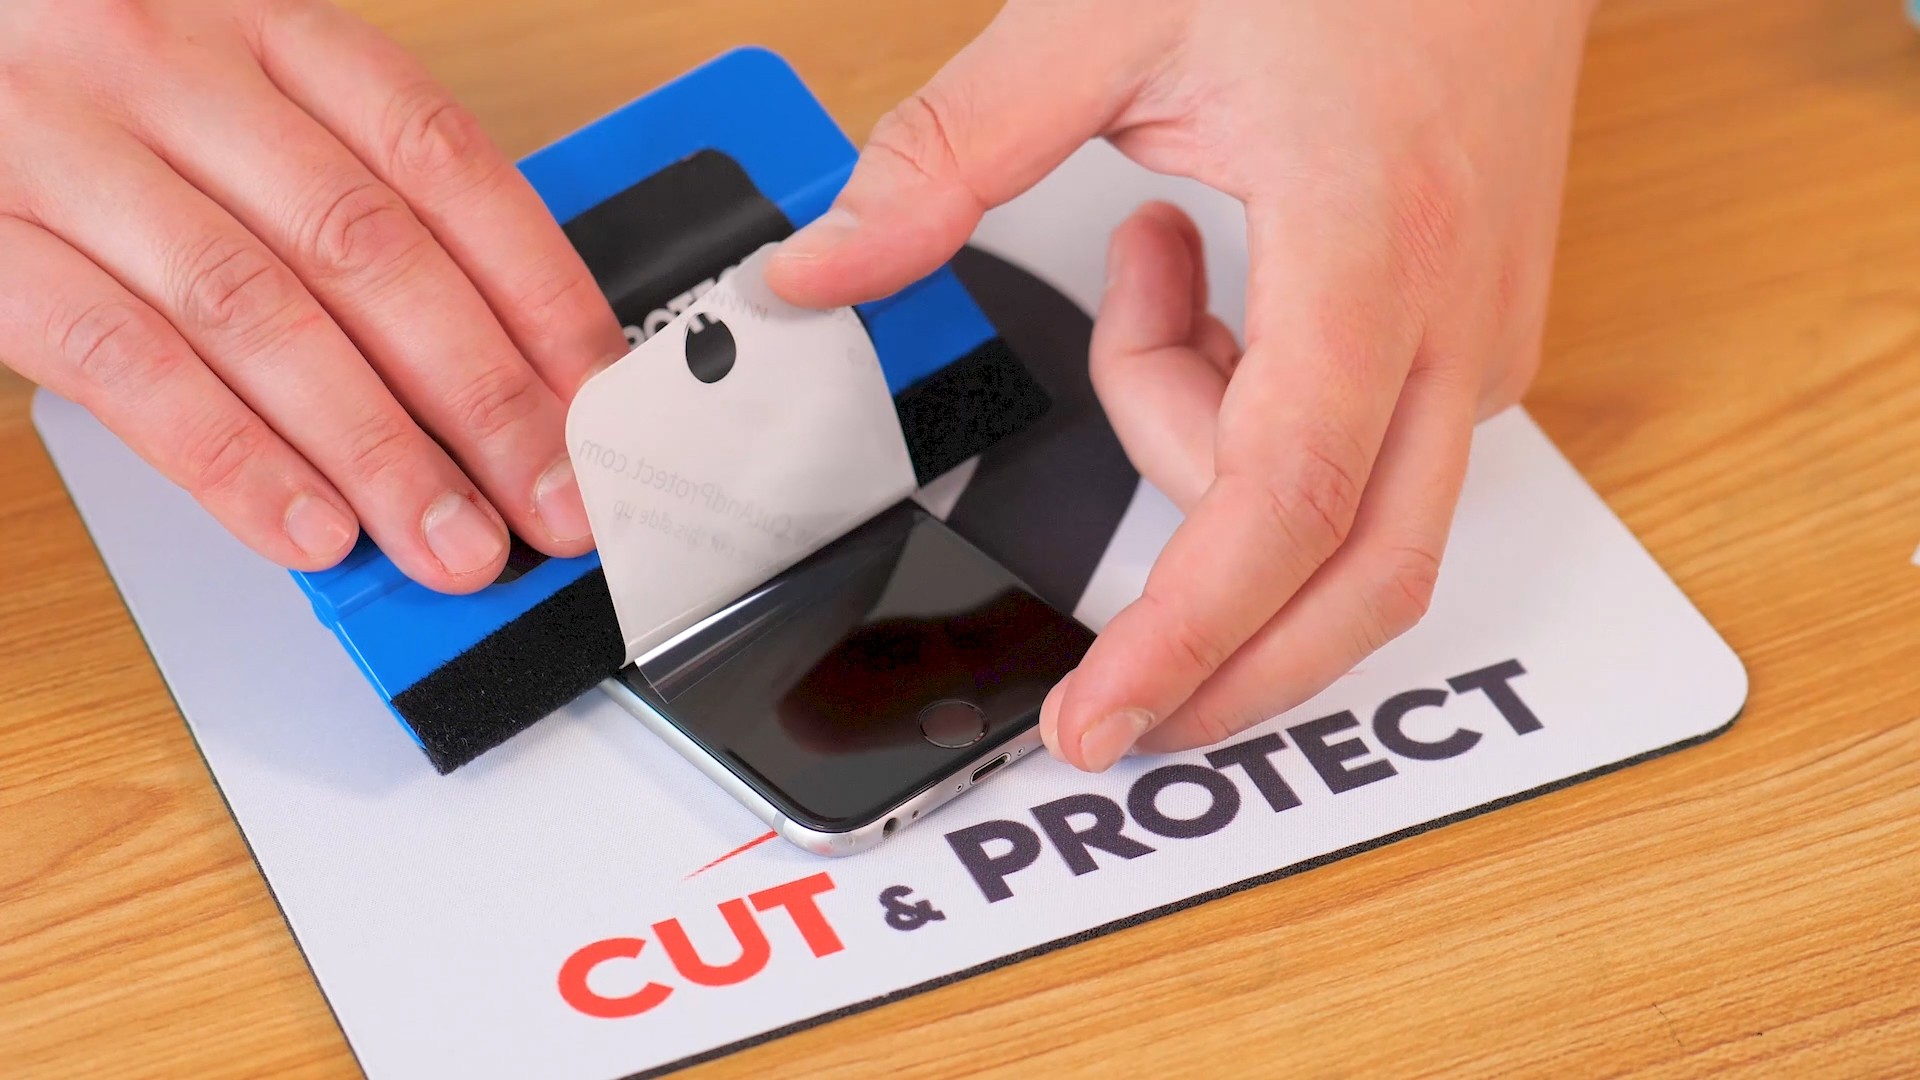 application du film de protection cut & protect sur un iphone 2